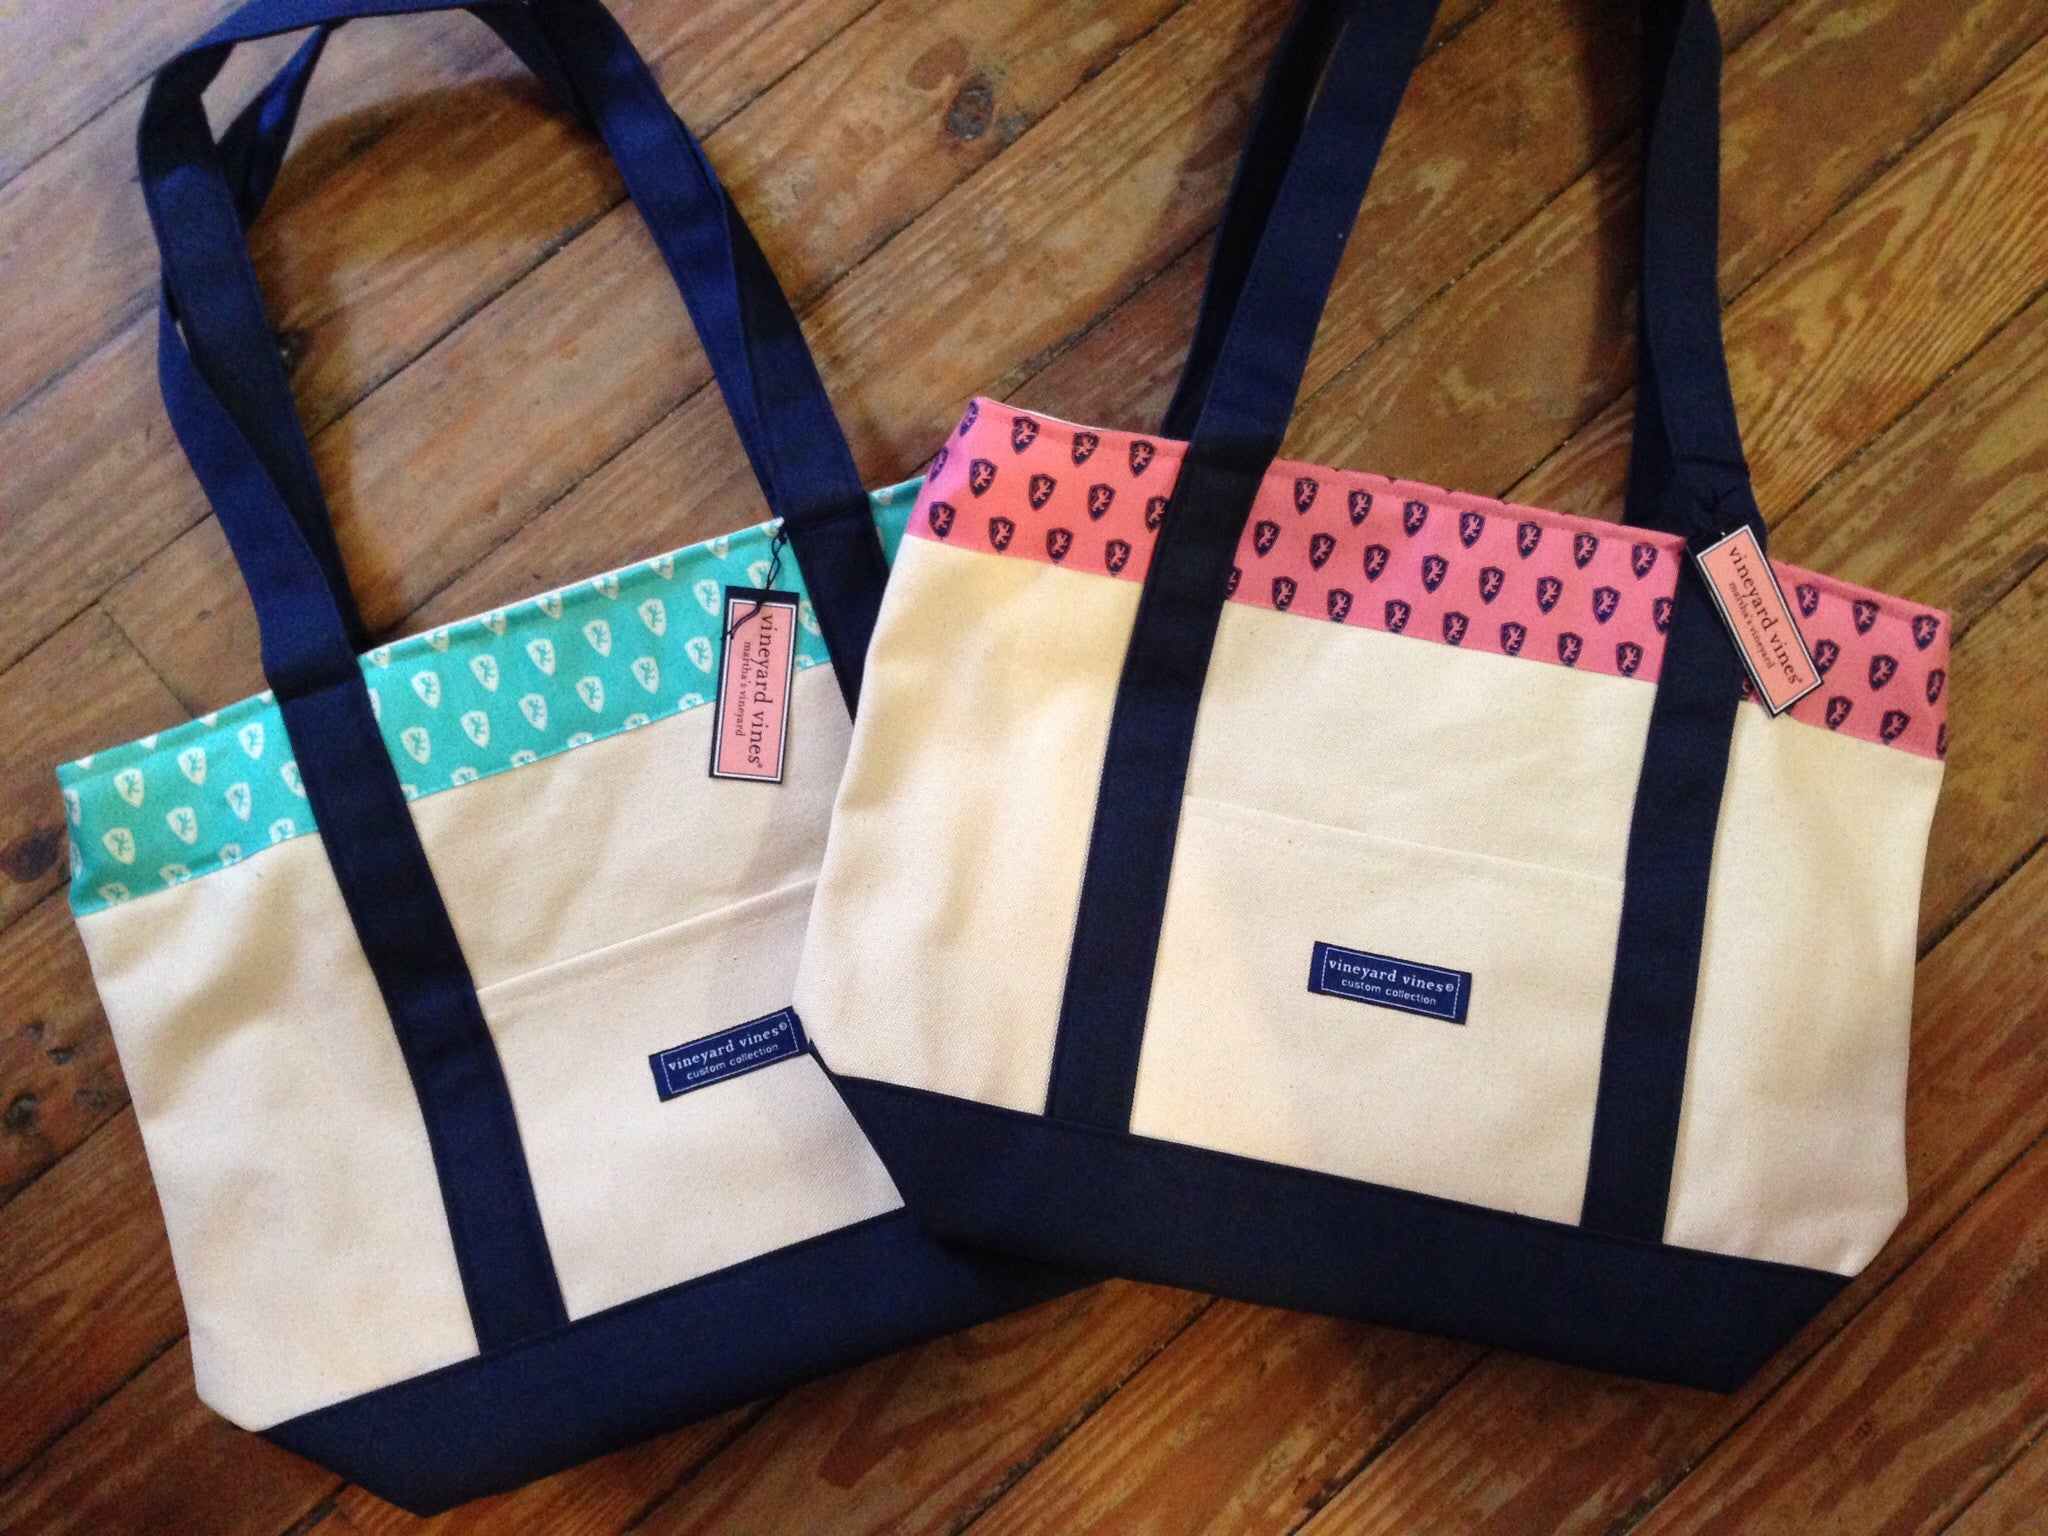 two canvas tote-bags: one has a baby blue section with a pattern of white lion shields and the other tote-bag has a pink section with navy lion shields. the handles are dark blue